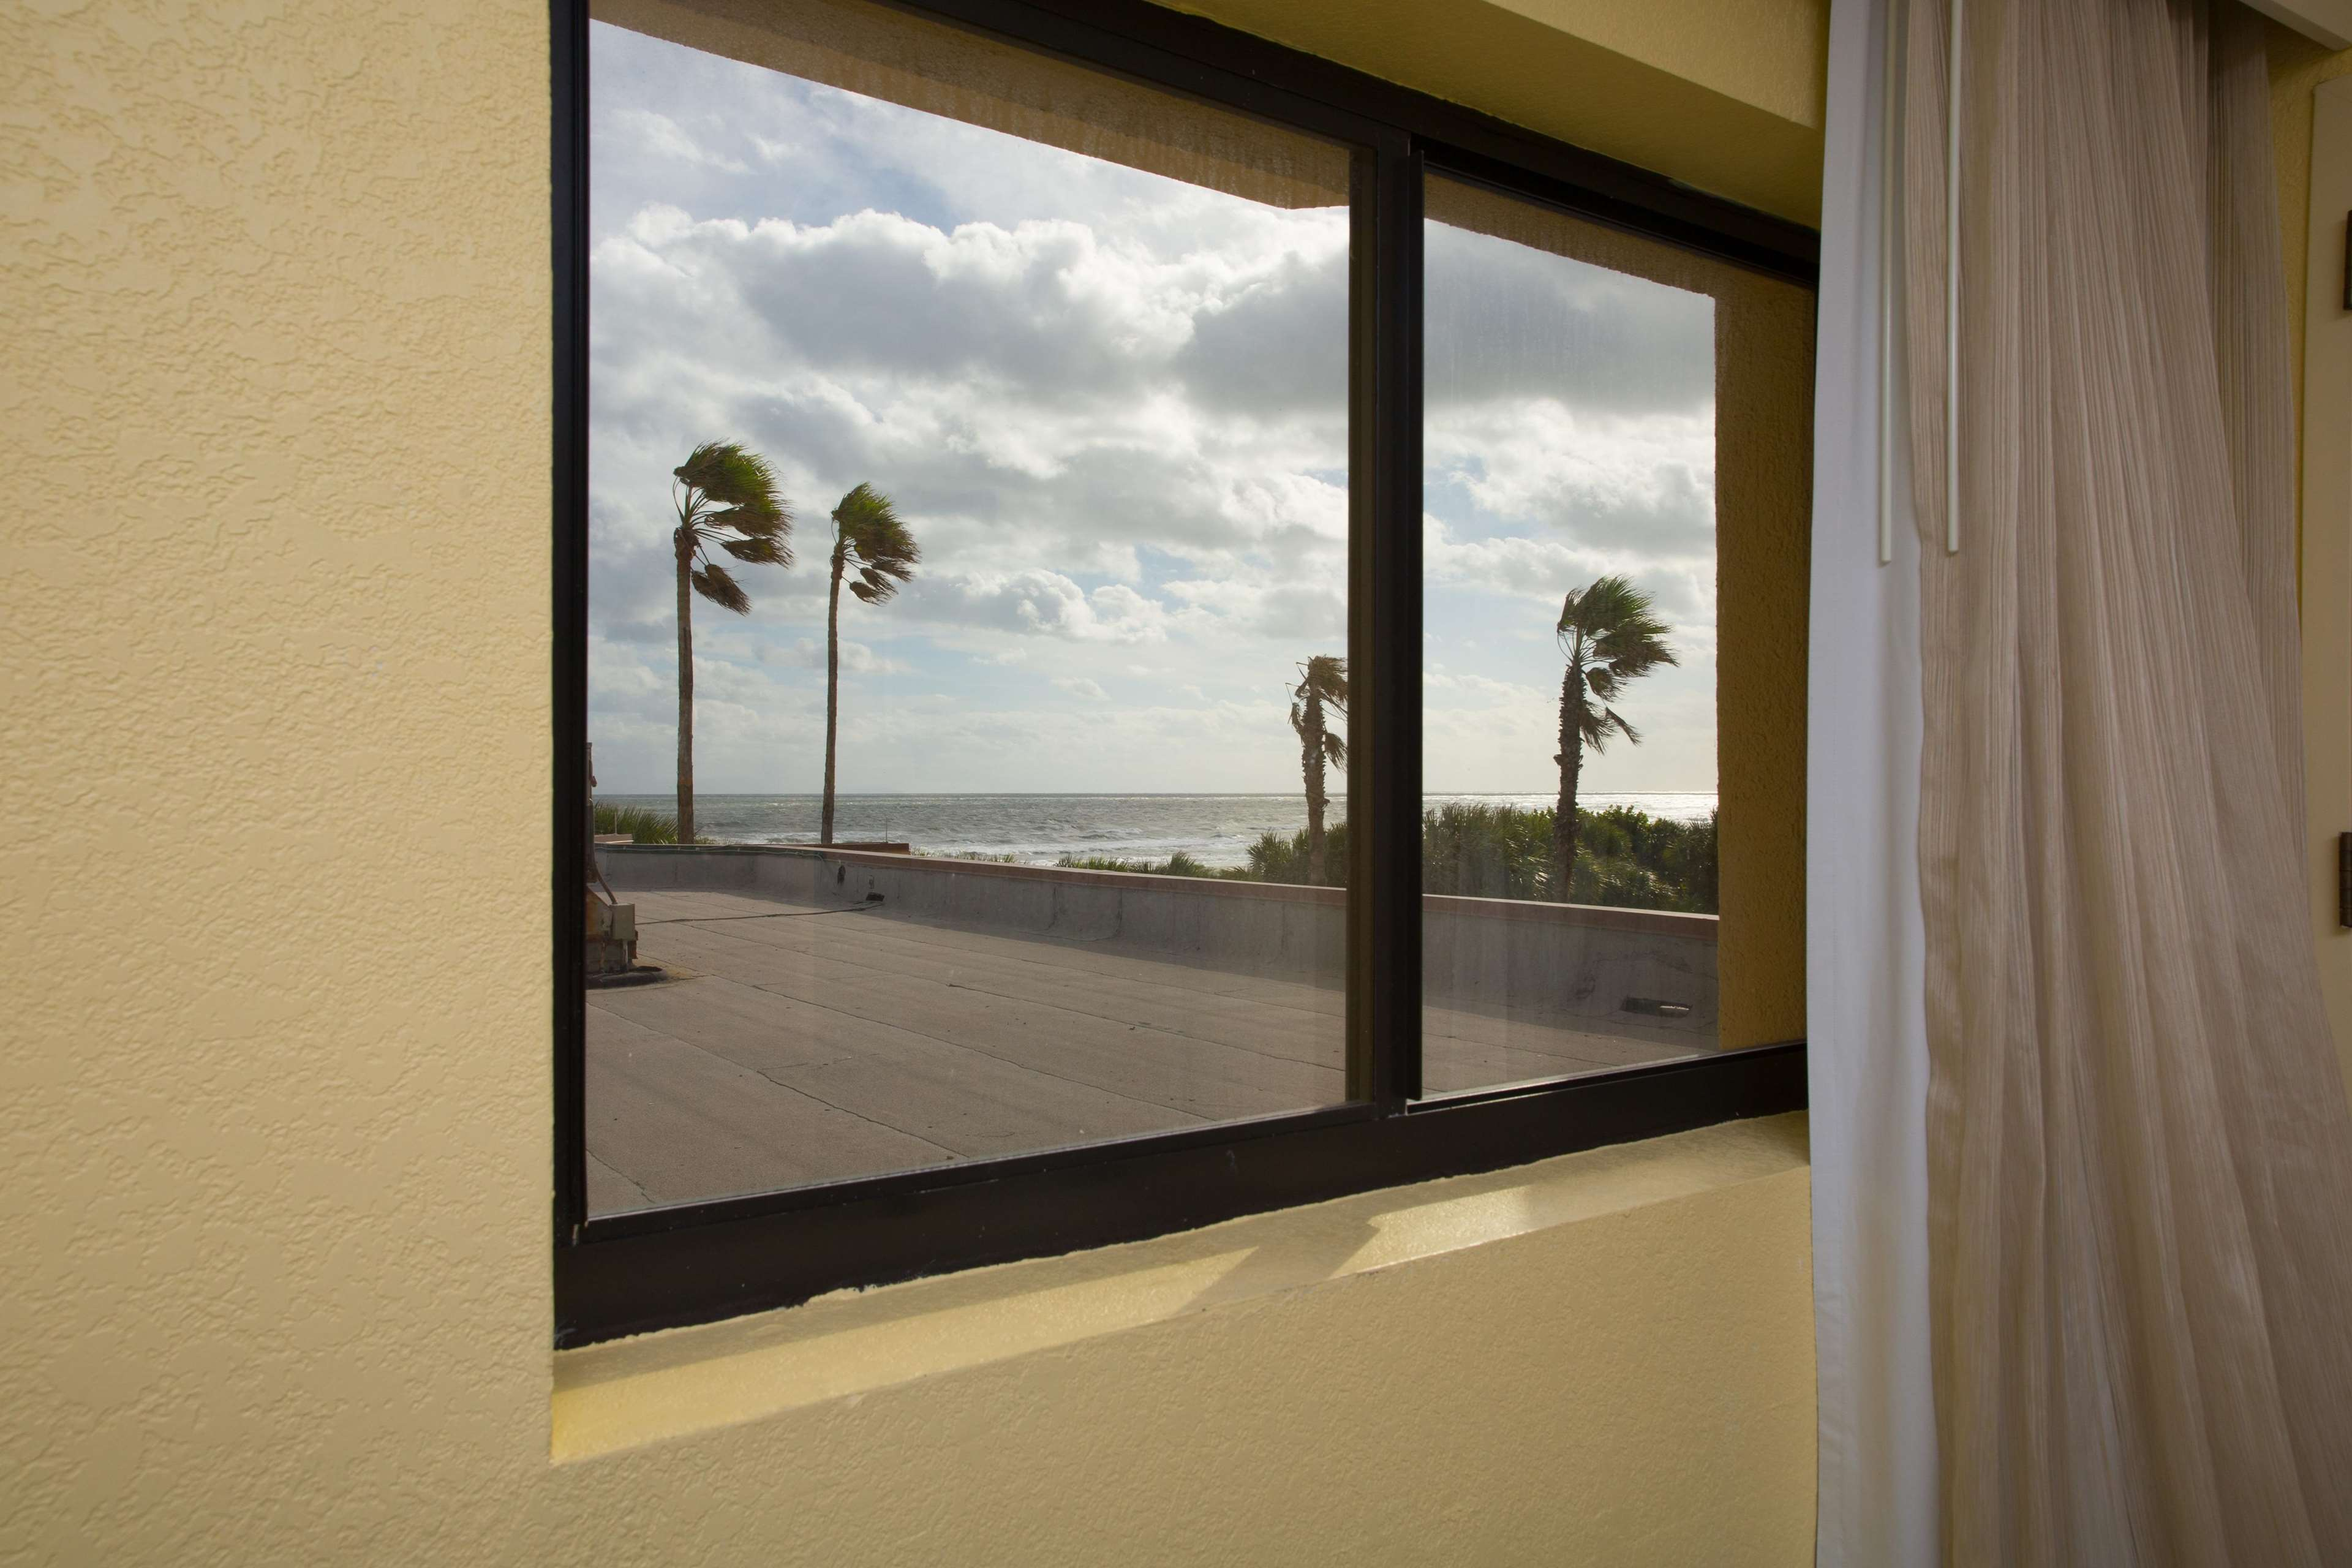 DoubleTree by Hilton Hotel Cocoa Beach Oceanfront image 37